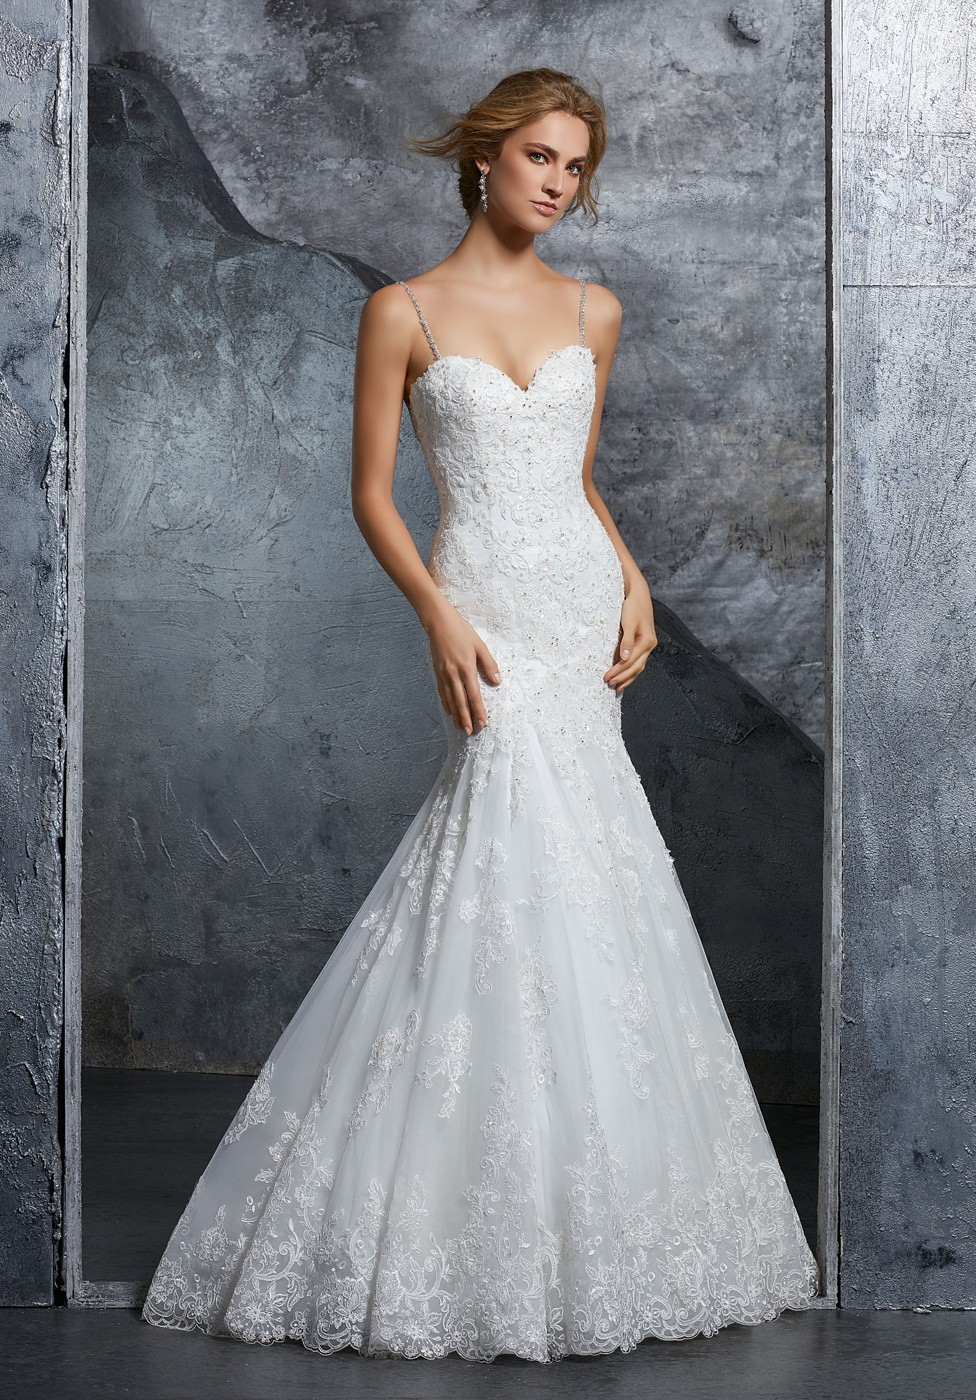 1273cd81e0 Mori Lee Kenzie Style 8210 Dress - MadameBridal.com